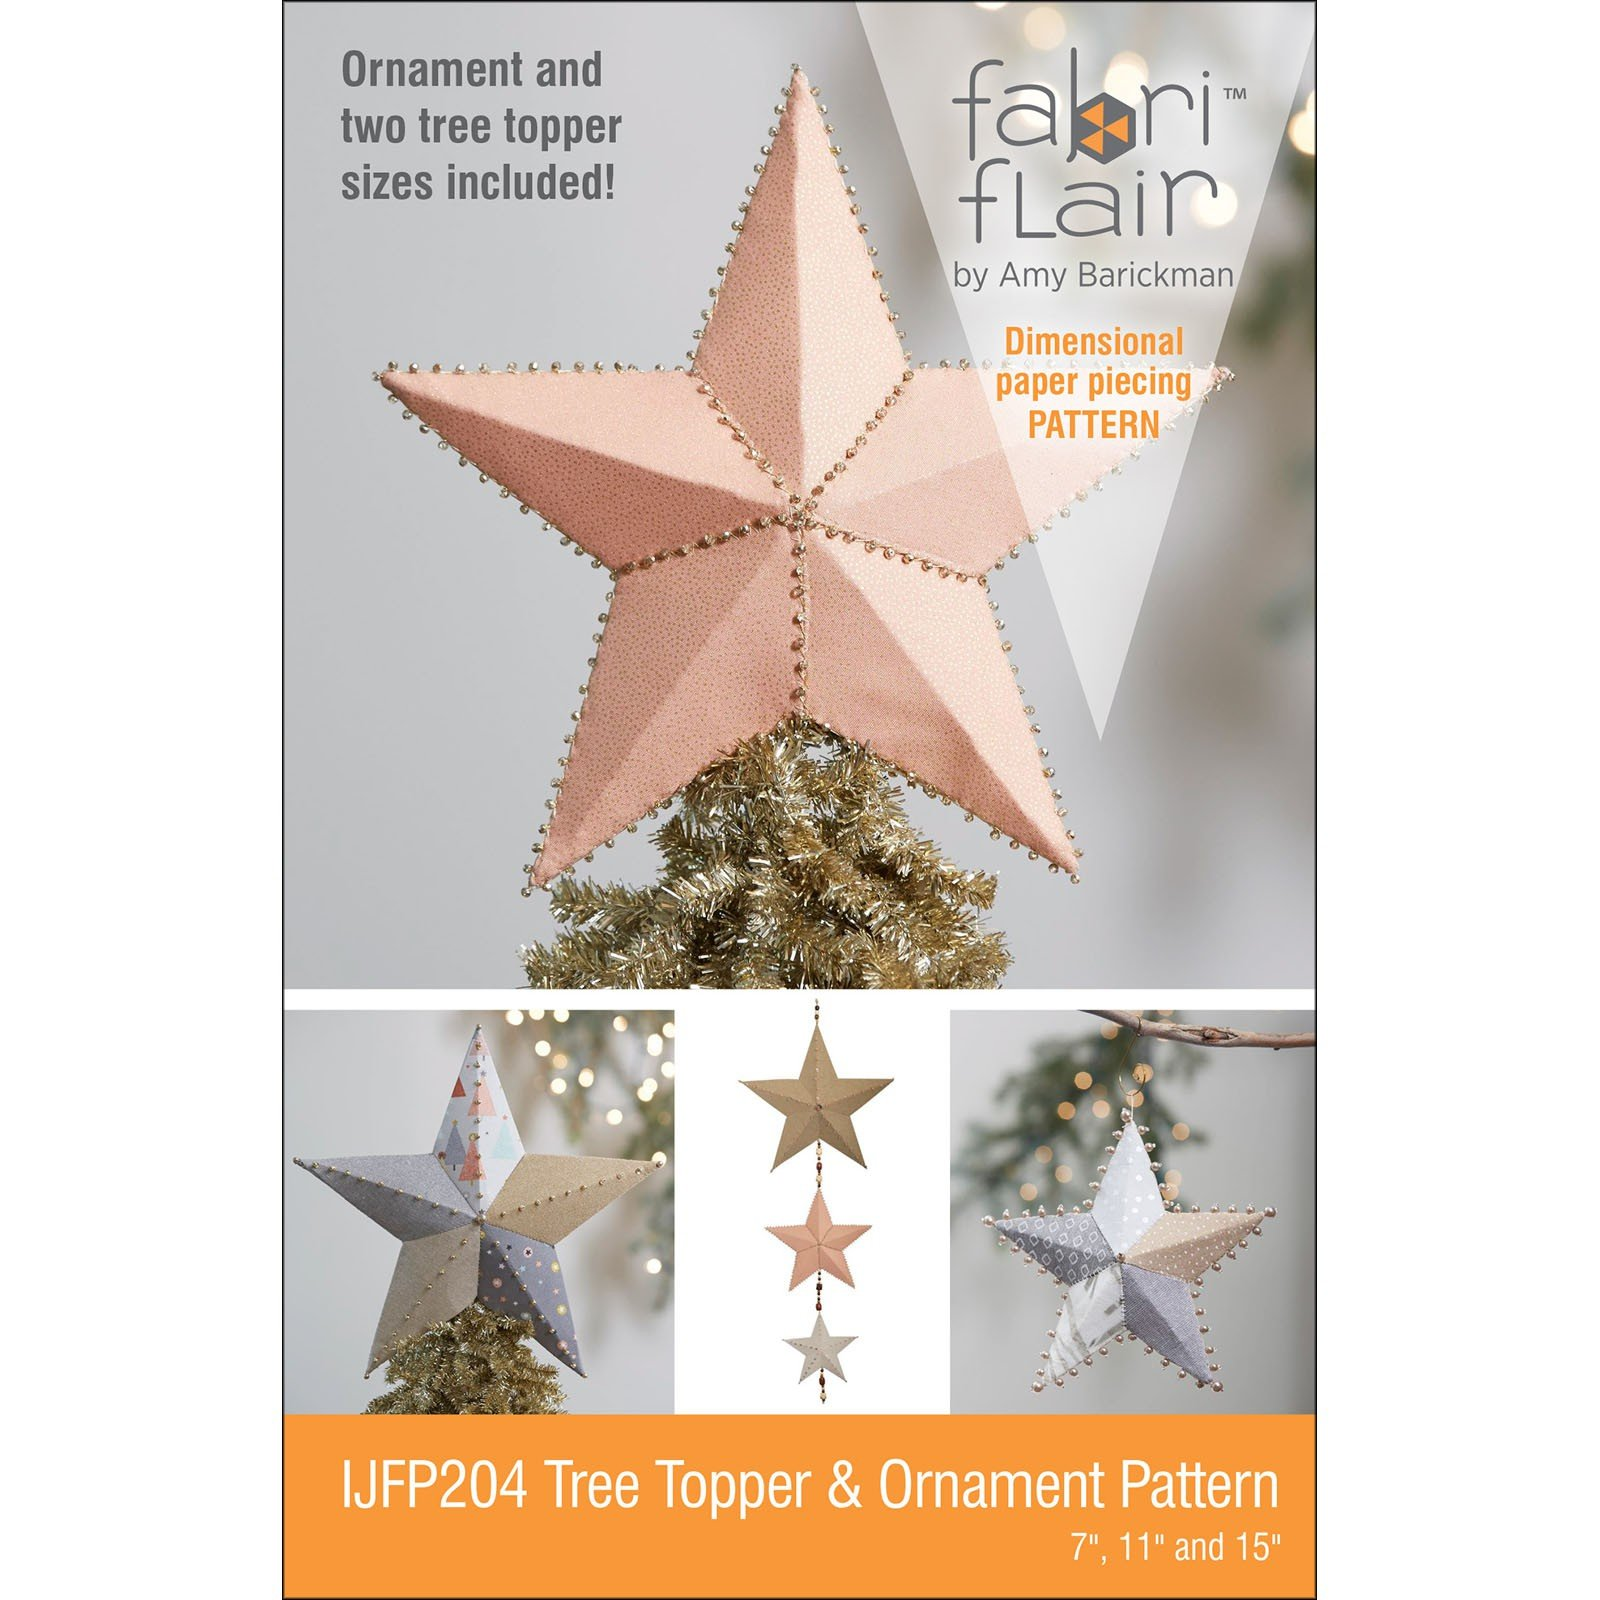 Fabriflair Tree Topper & Ornament<br/>Indygo Junction IJFP204